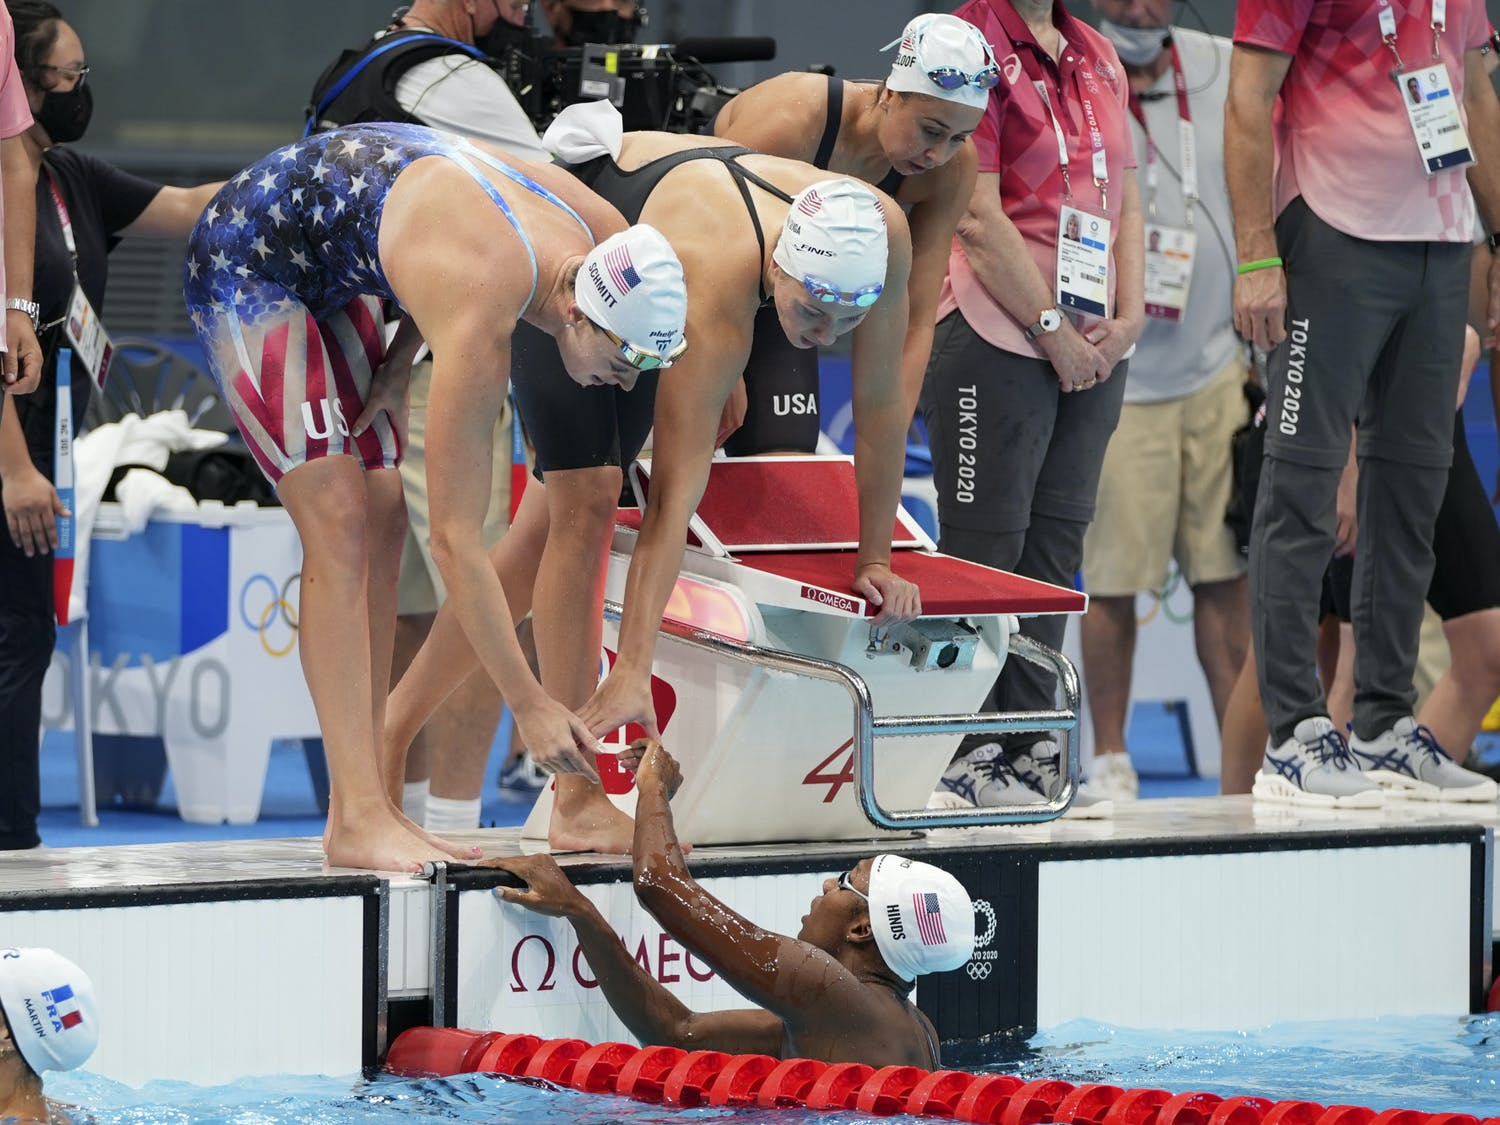 Natalie Hinds, bottom, of the United States is congratulated by teammates after swimming the fourth leg during a preliminary round of the women's 4x100m freestyle relay at the 2020 Summer Olympics, Saturday, July 24, 2021, in Tokyo, Japan. (AP Photo/Matthias Schrader)